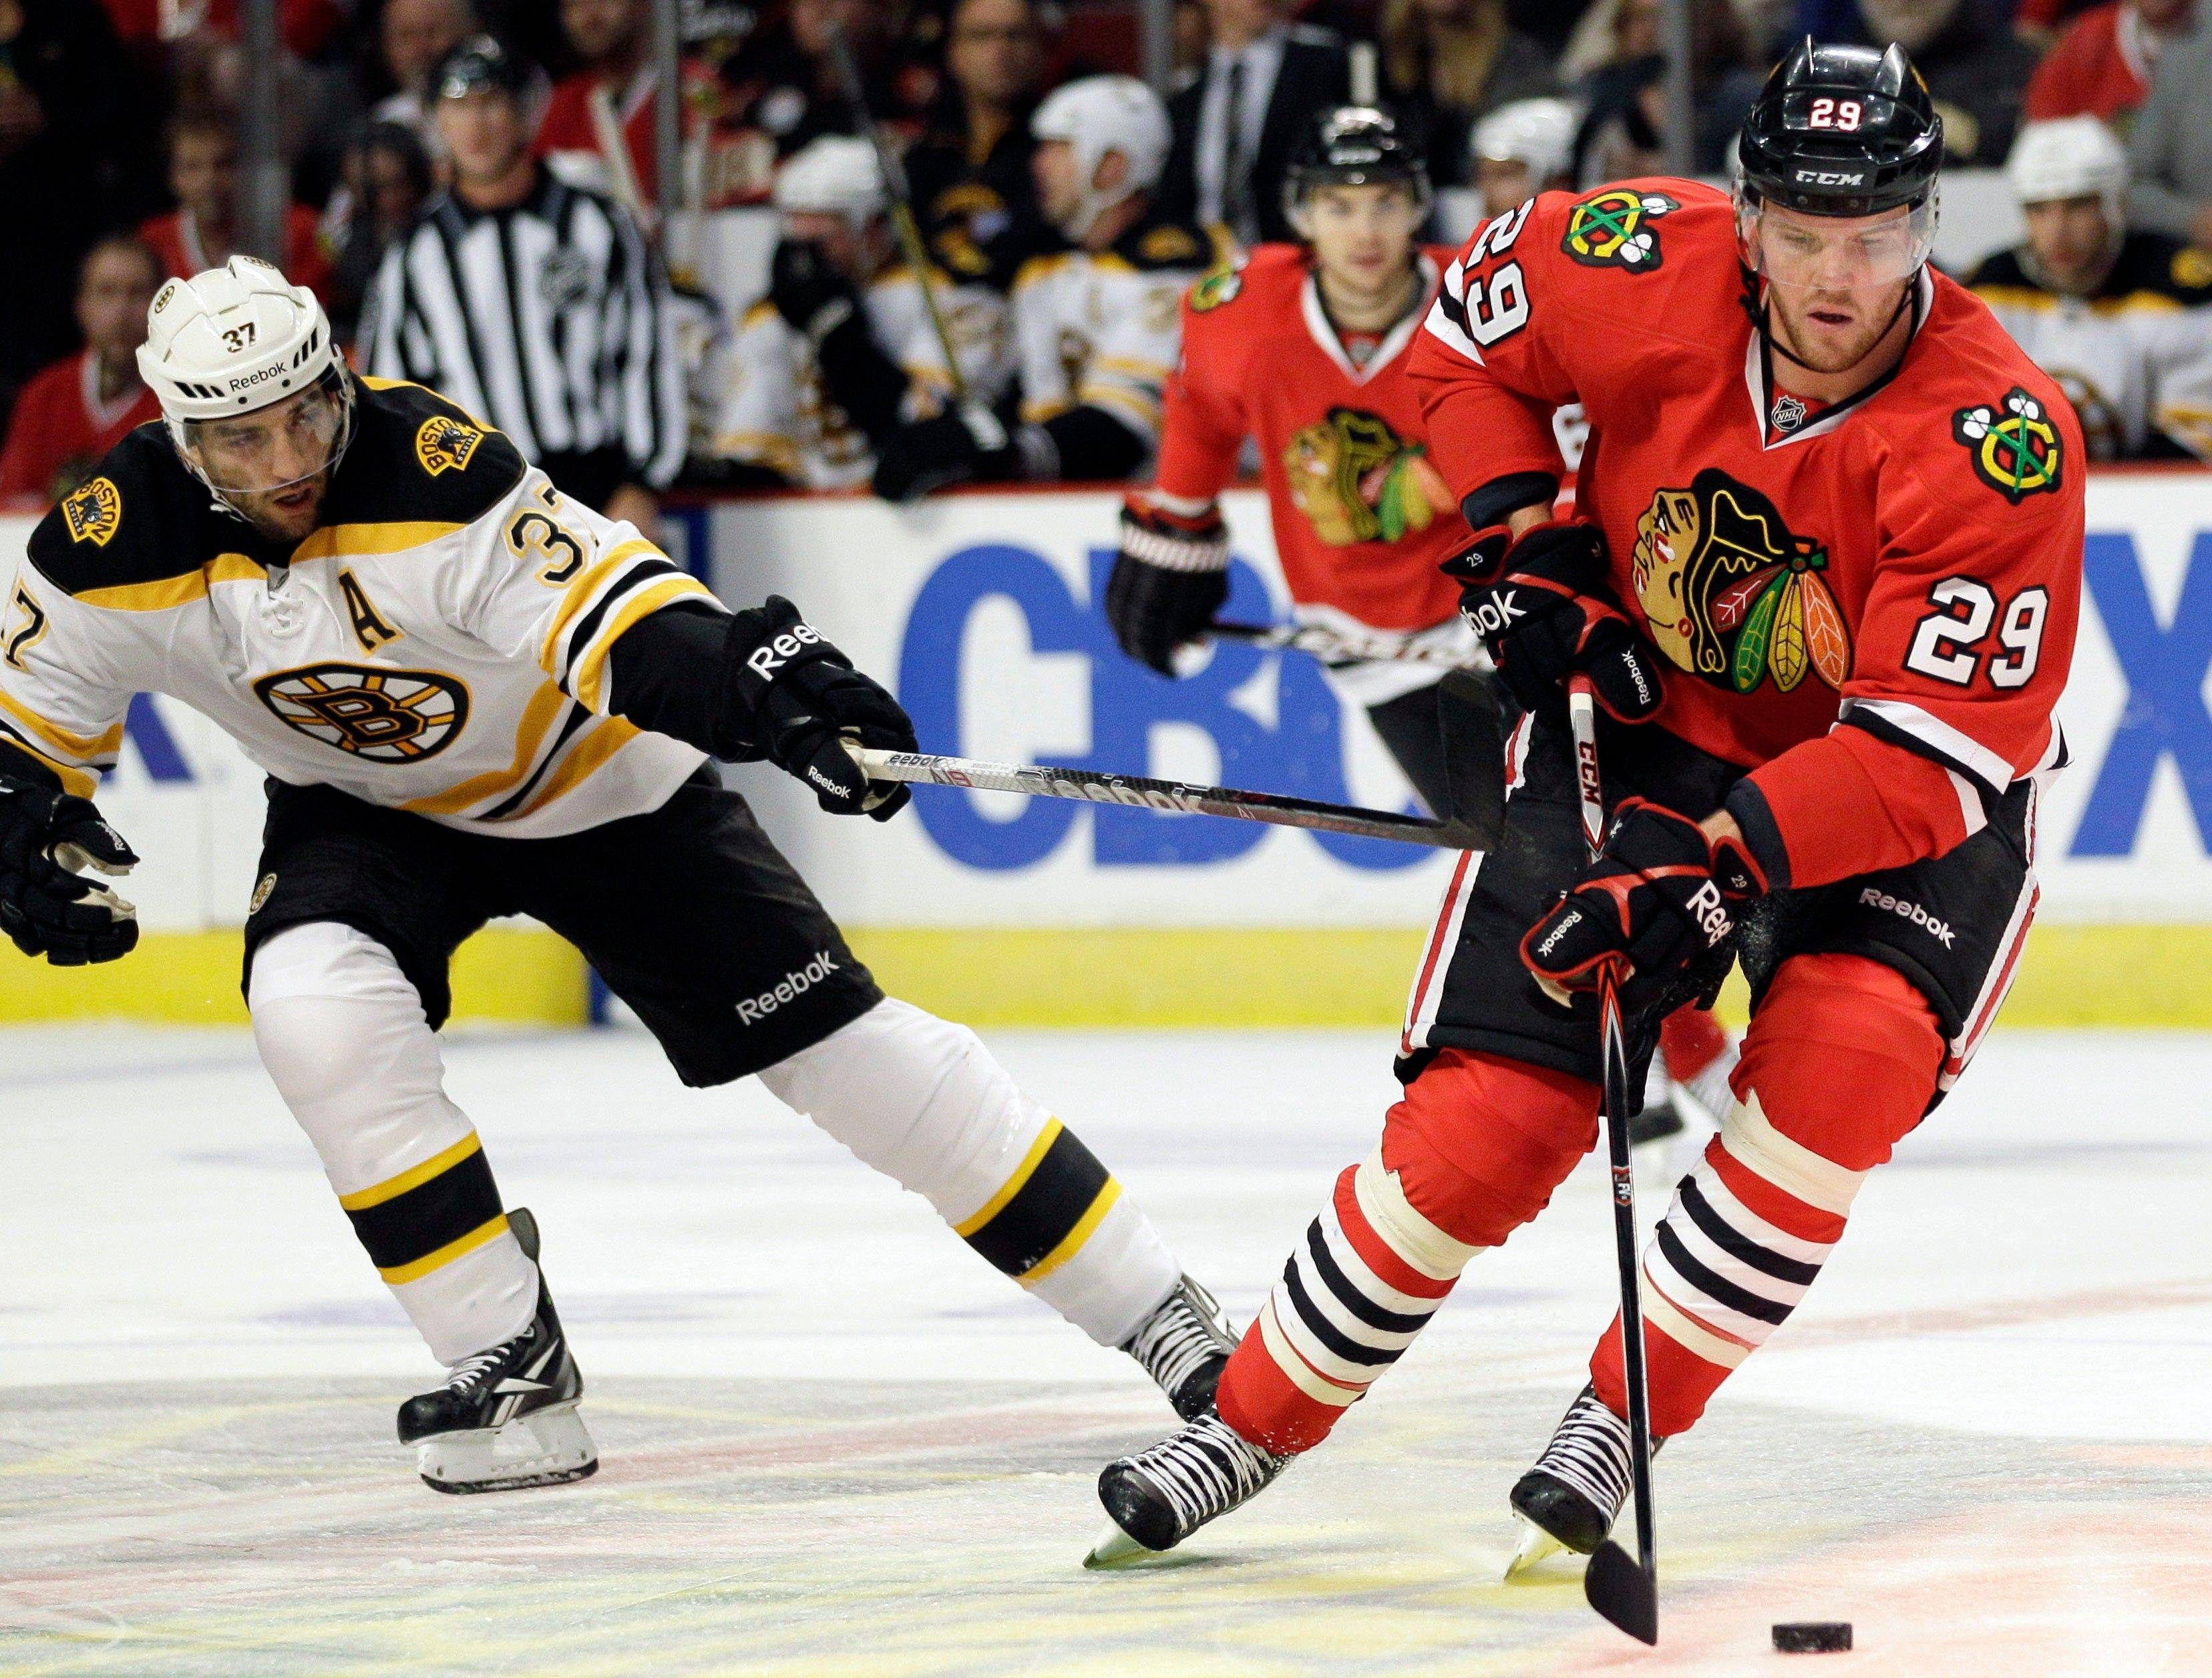 The Blackhawks sat Bryan Bickell (29) for five games, but he'll be back in the lineup Wednesday against Minnesota. Head coach Joel Quenneville wants Bickell to use his size and speed to be a factor in games.